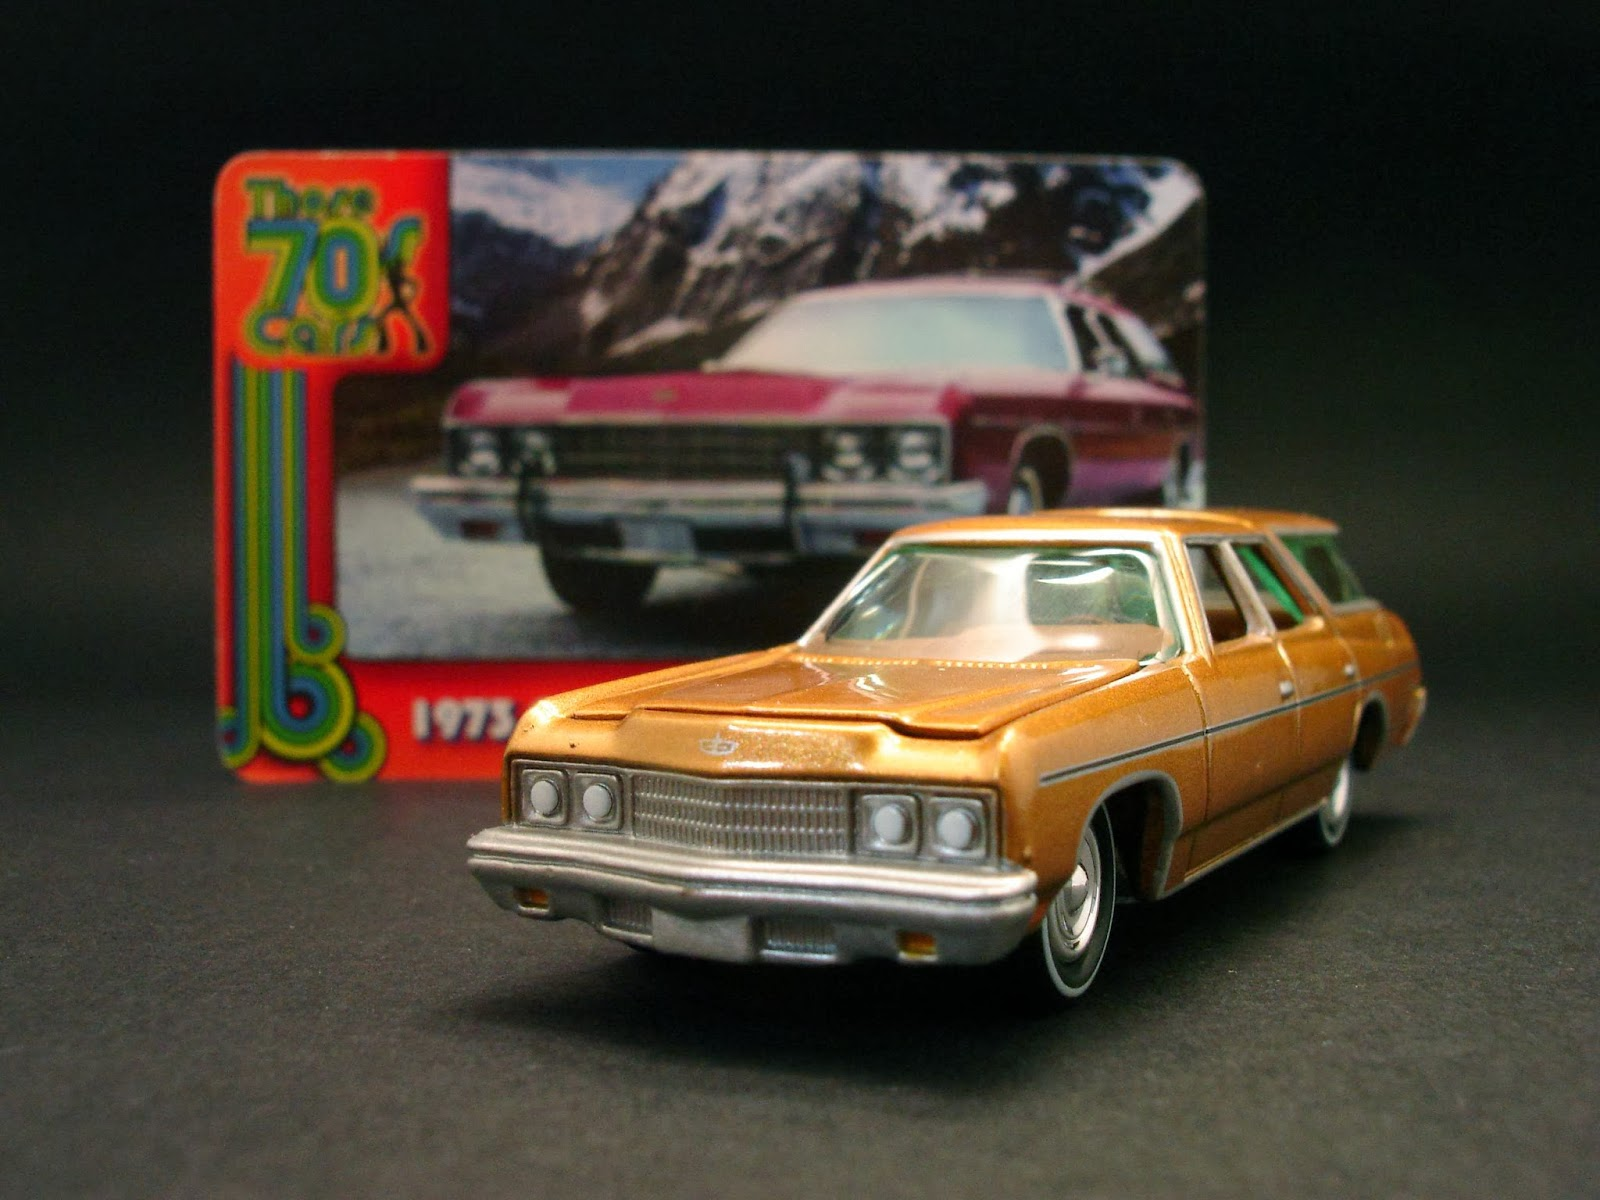 Diecast hobbist 1973 chevrolet caprice station wagon 164 scale diecast from johnny lightning those 70s cars release 1 publicscrutiny Choice Image